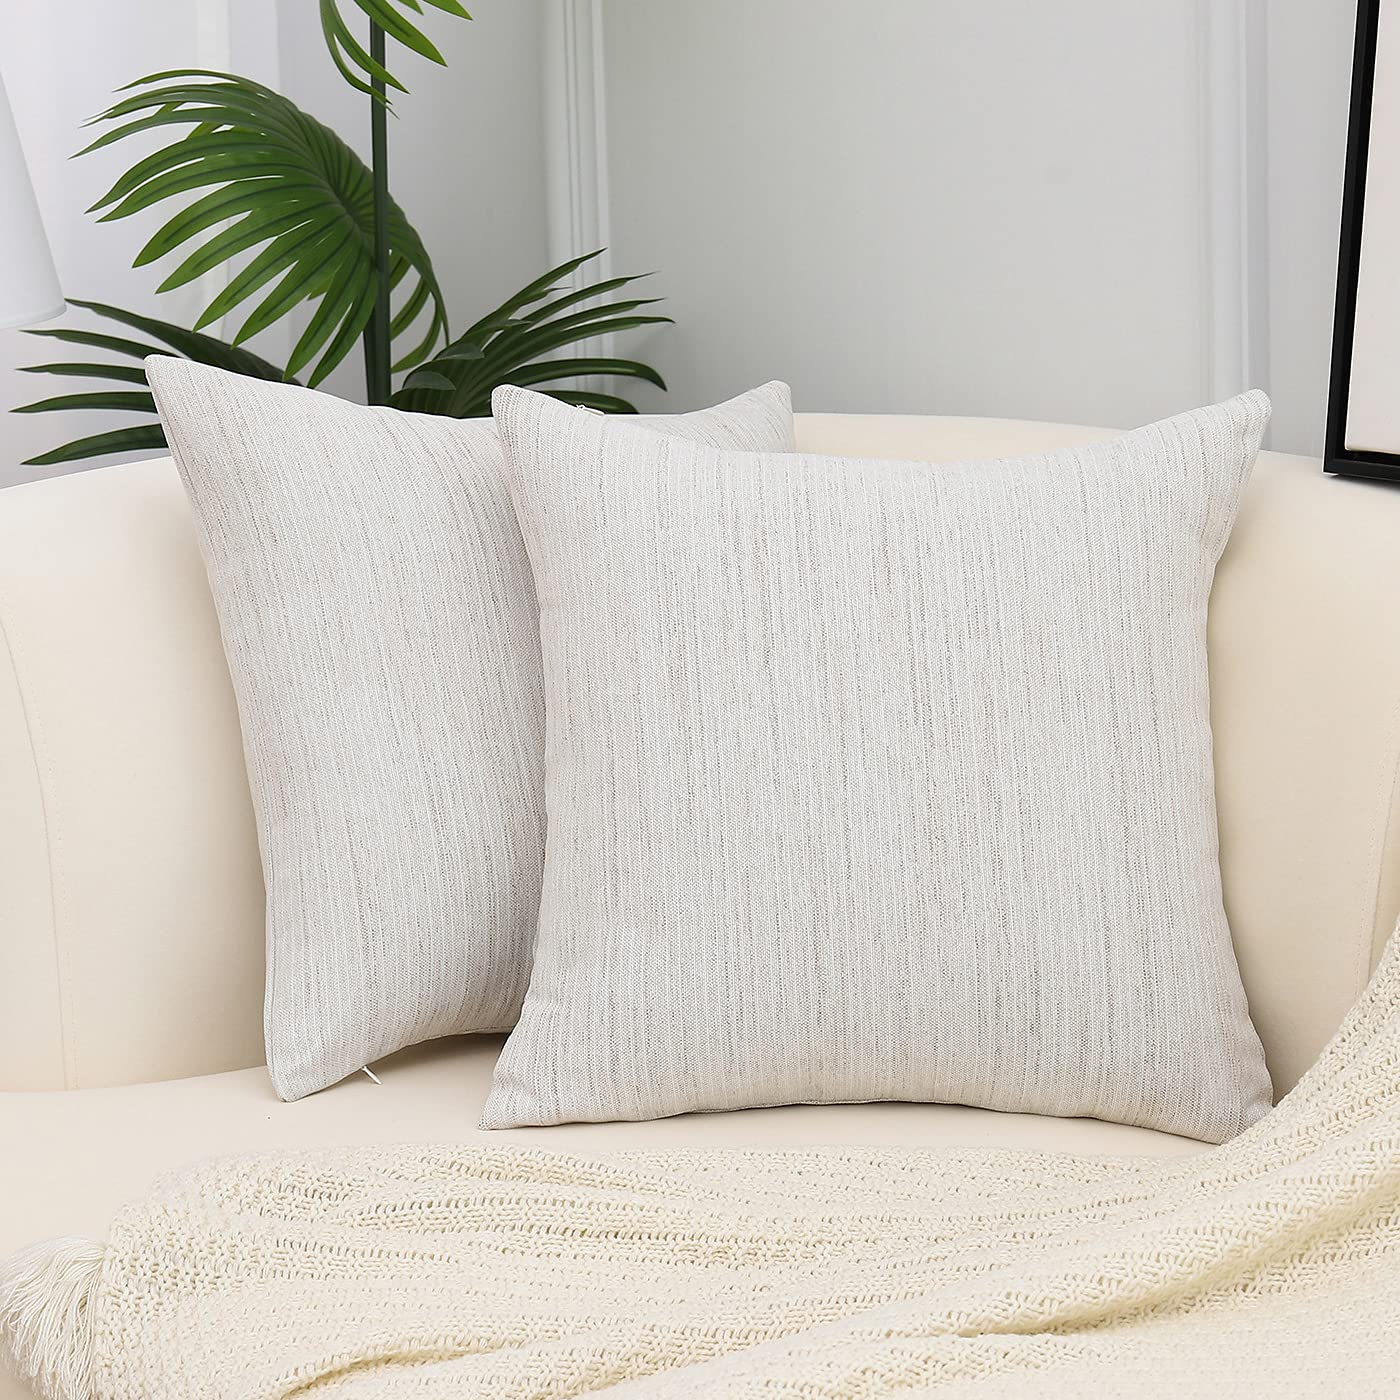 JJHYMYWW Throw Pillow Covers Decorative Linen 18 x 18 Inches Square Pillowcases